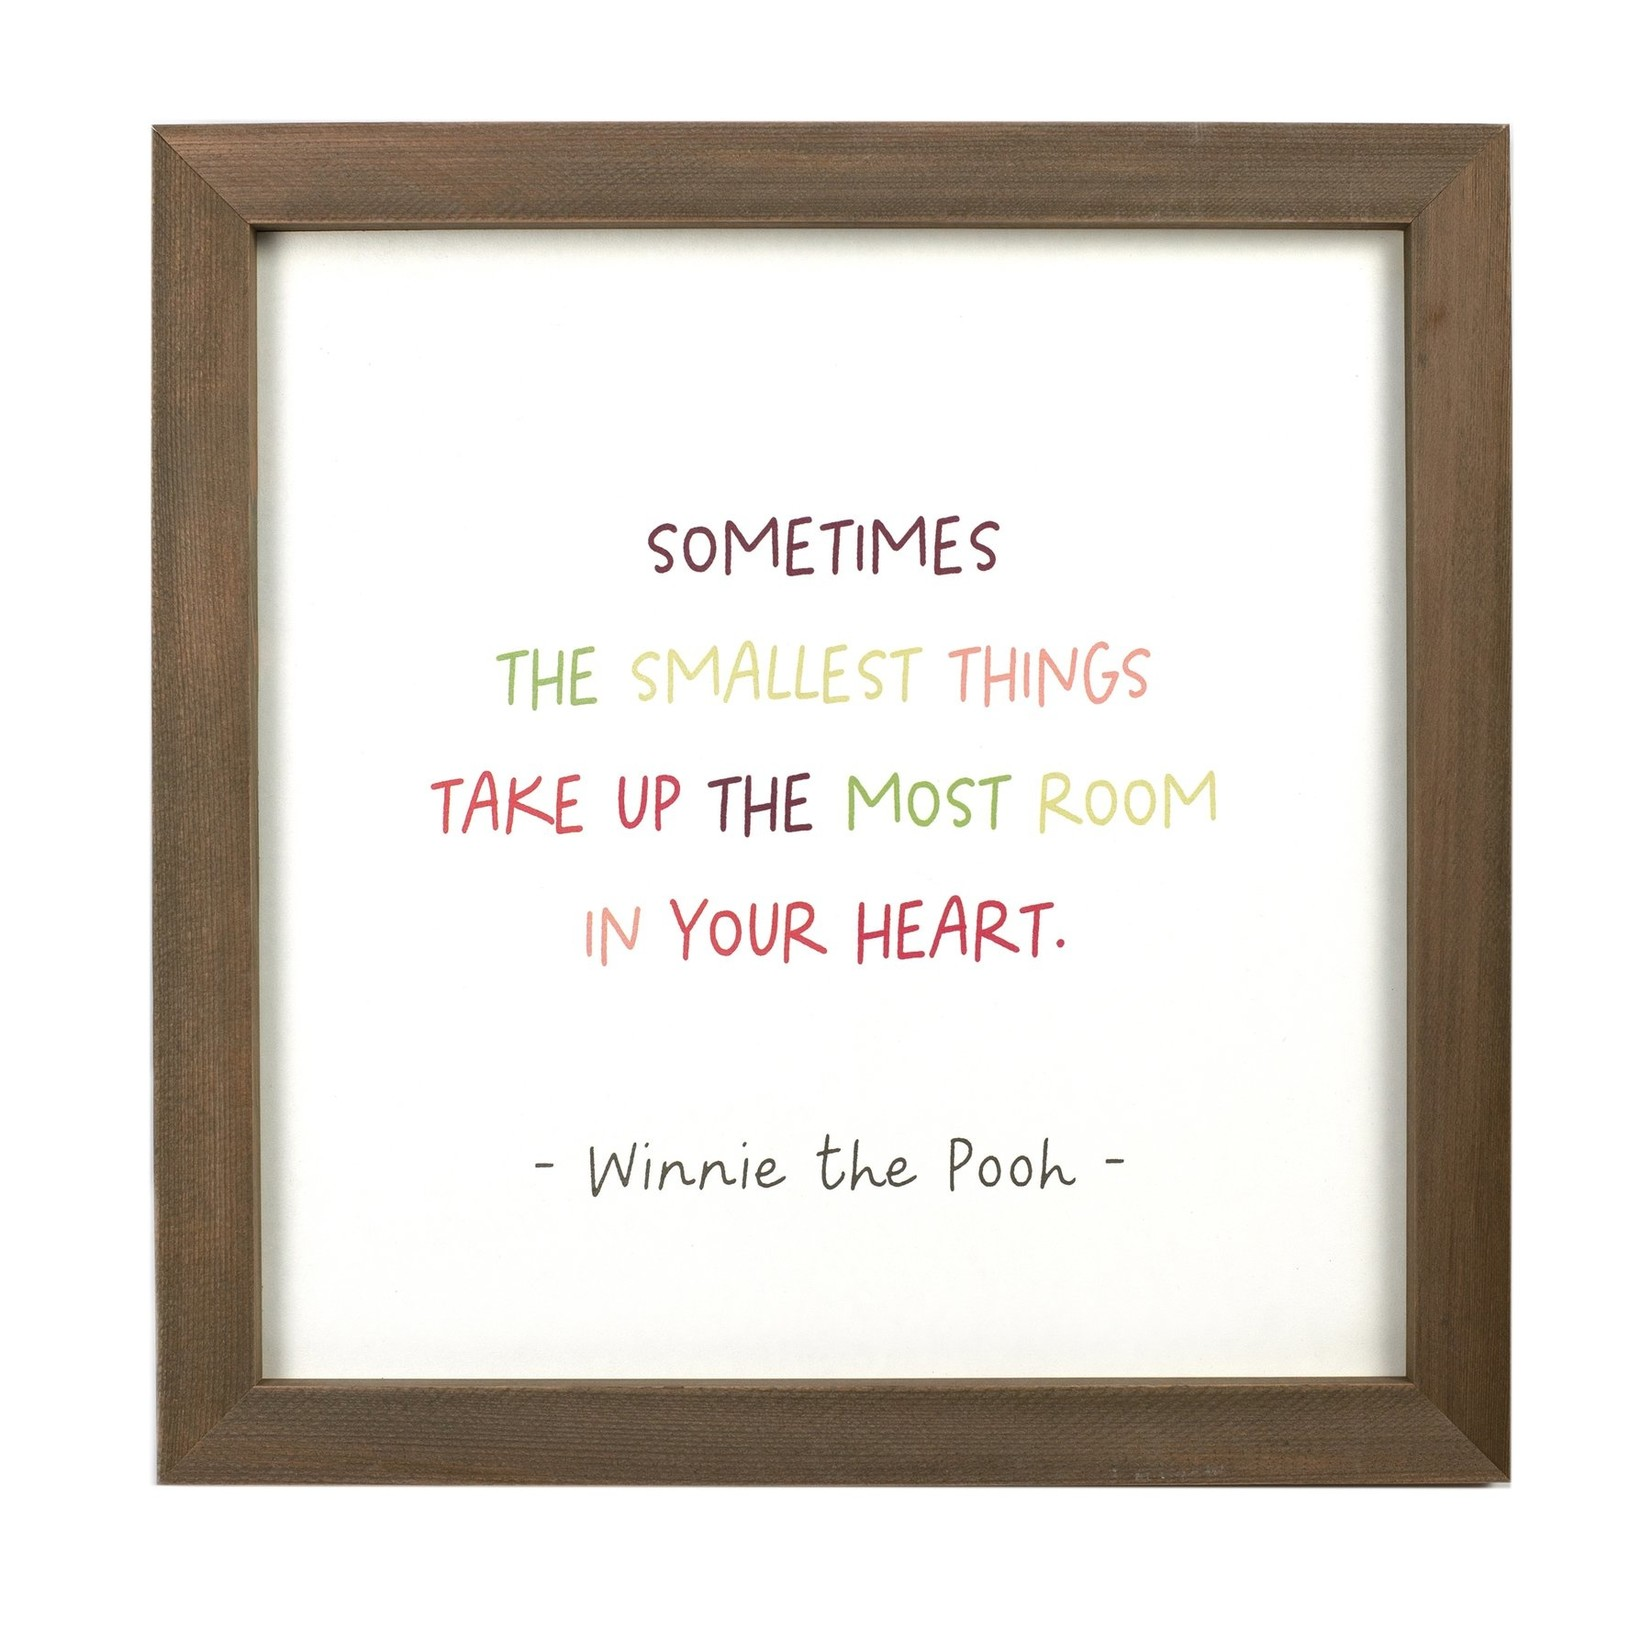 Cedar Mountain Smallest Things (Winnie the Pooh) Framed Words